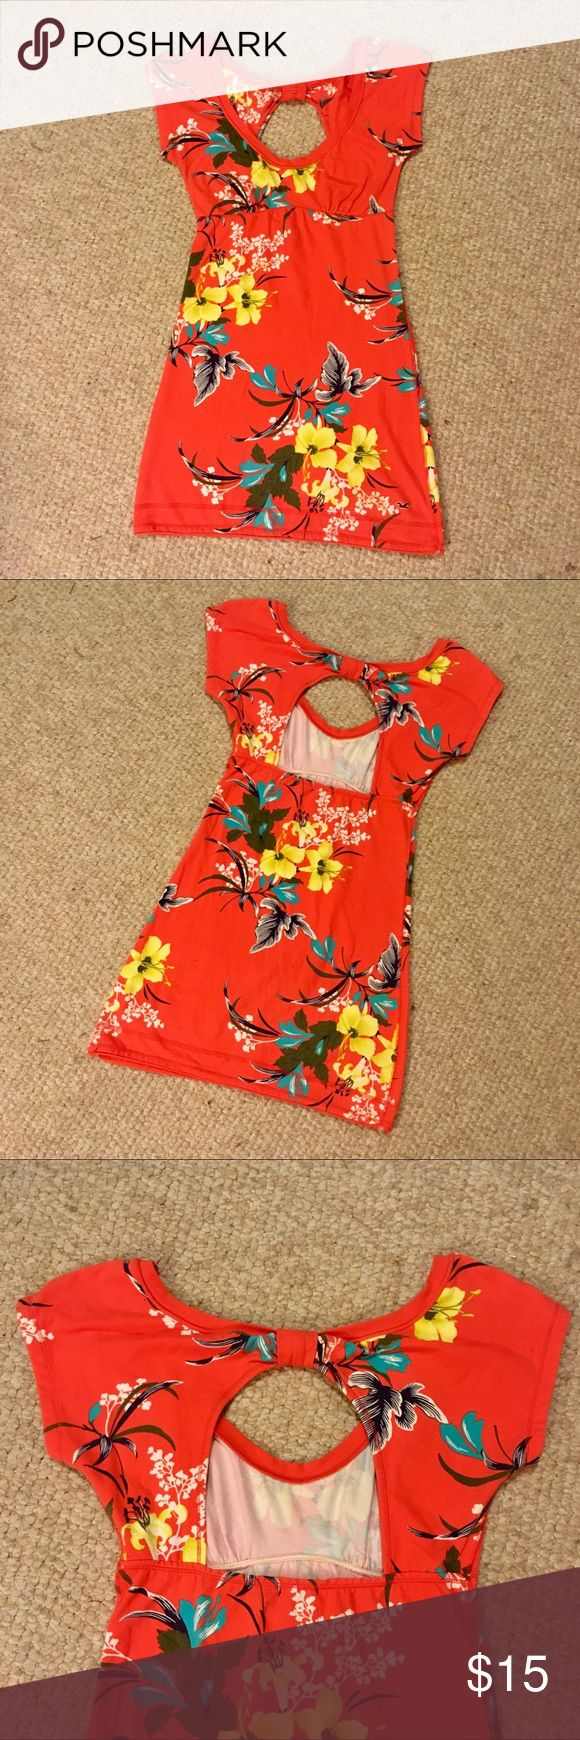 "Hollister Orange Floral Cut Out Back Dress Worn less than 5-7 times. It was a hit at the ""Hawaiian themed"" college parties I went to, but it was rarely worn outside of that! Very cute cutout back, short sleeves.  Can answer any other questions! Hollister Dresses Mini"